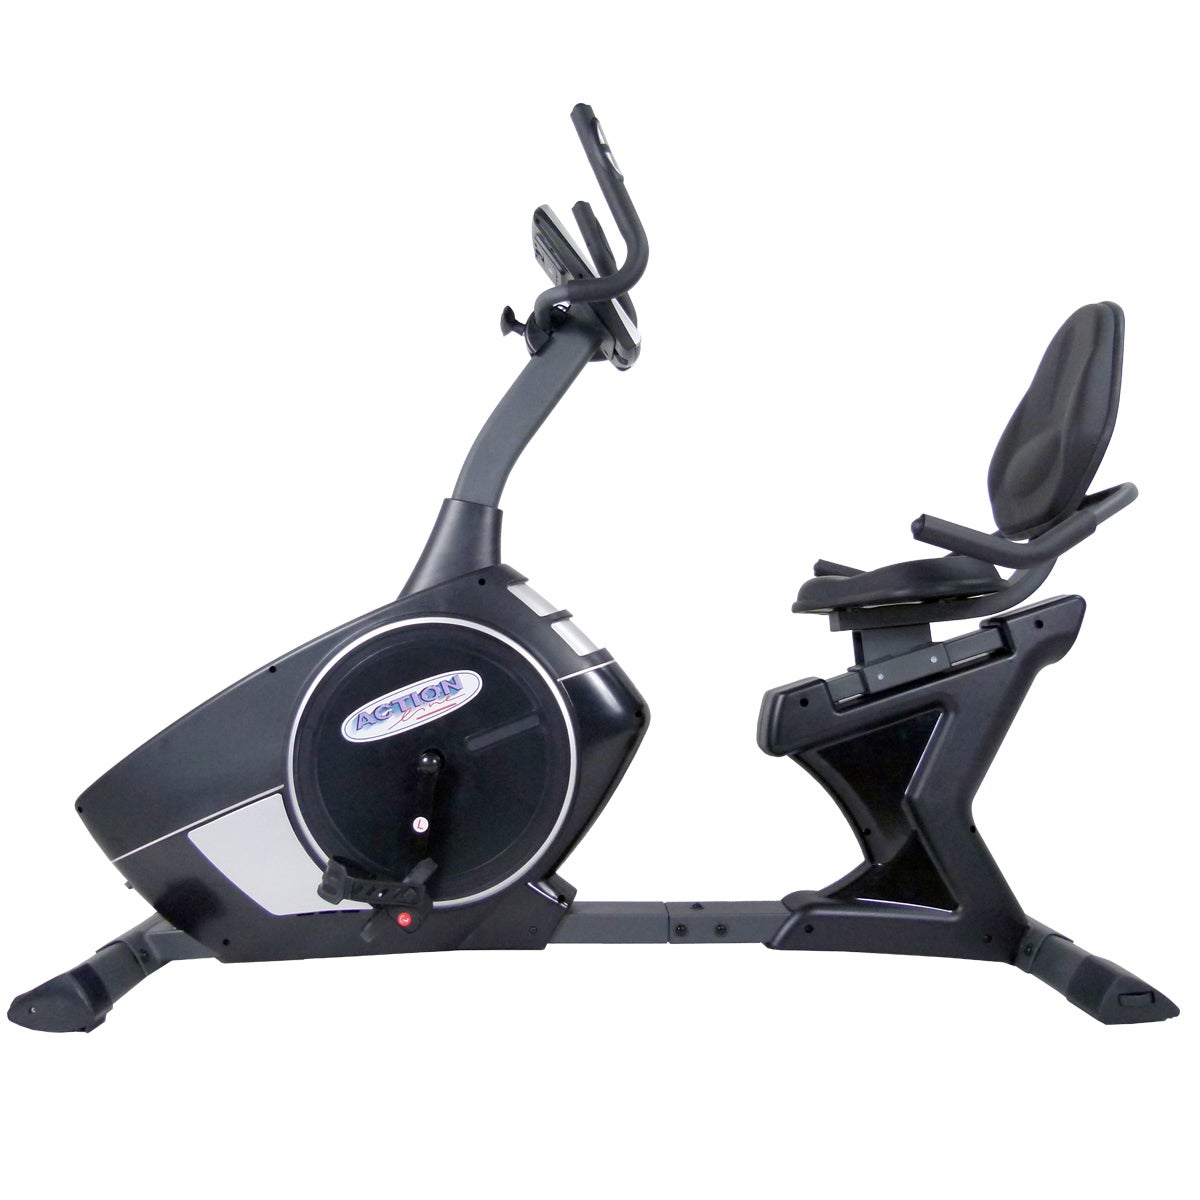 ActionLine A87604 Magnetic Programmable Recumbent Exercis...